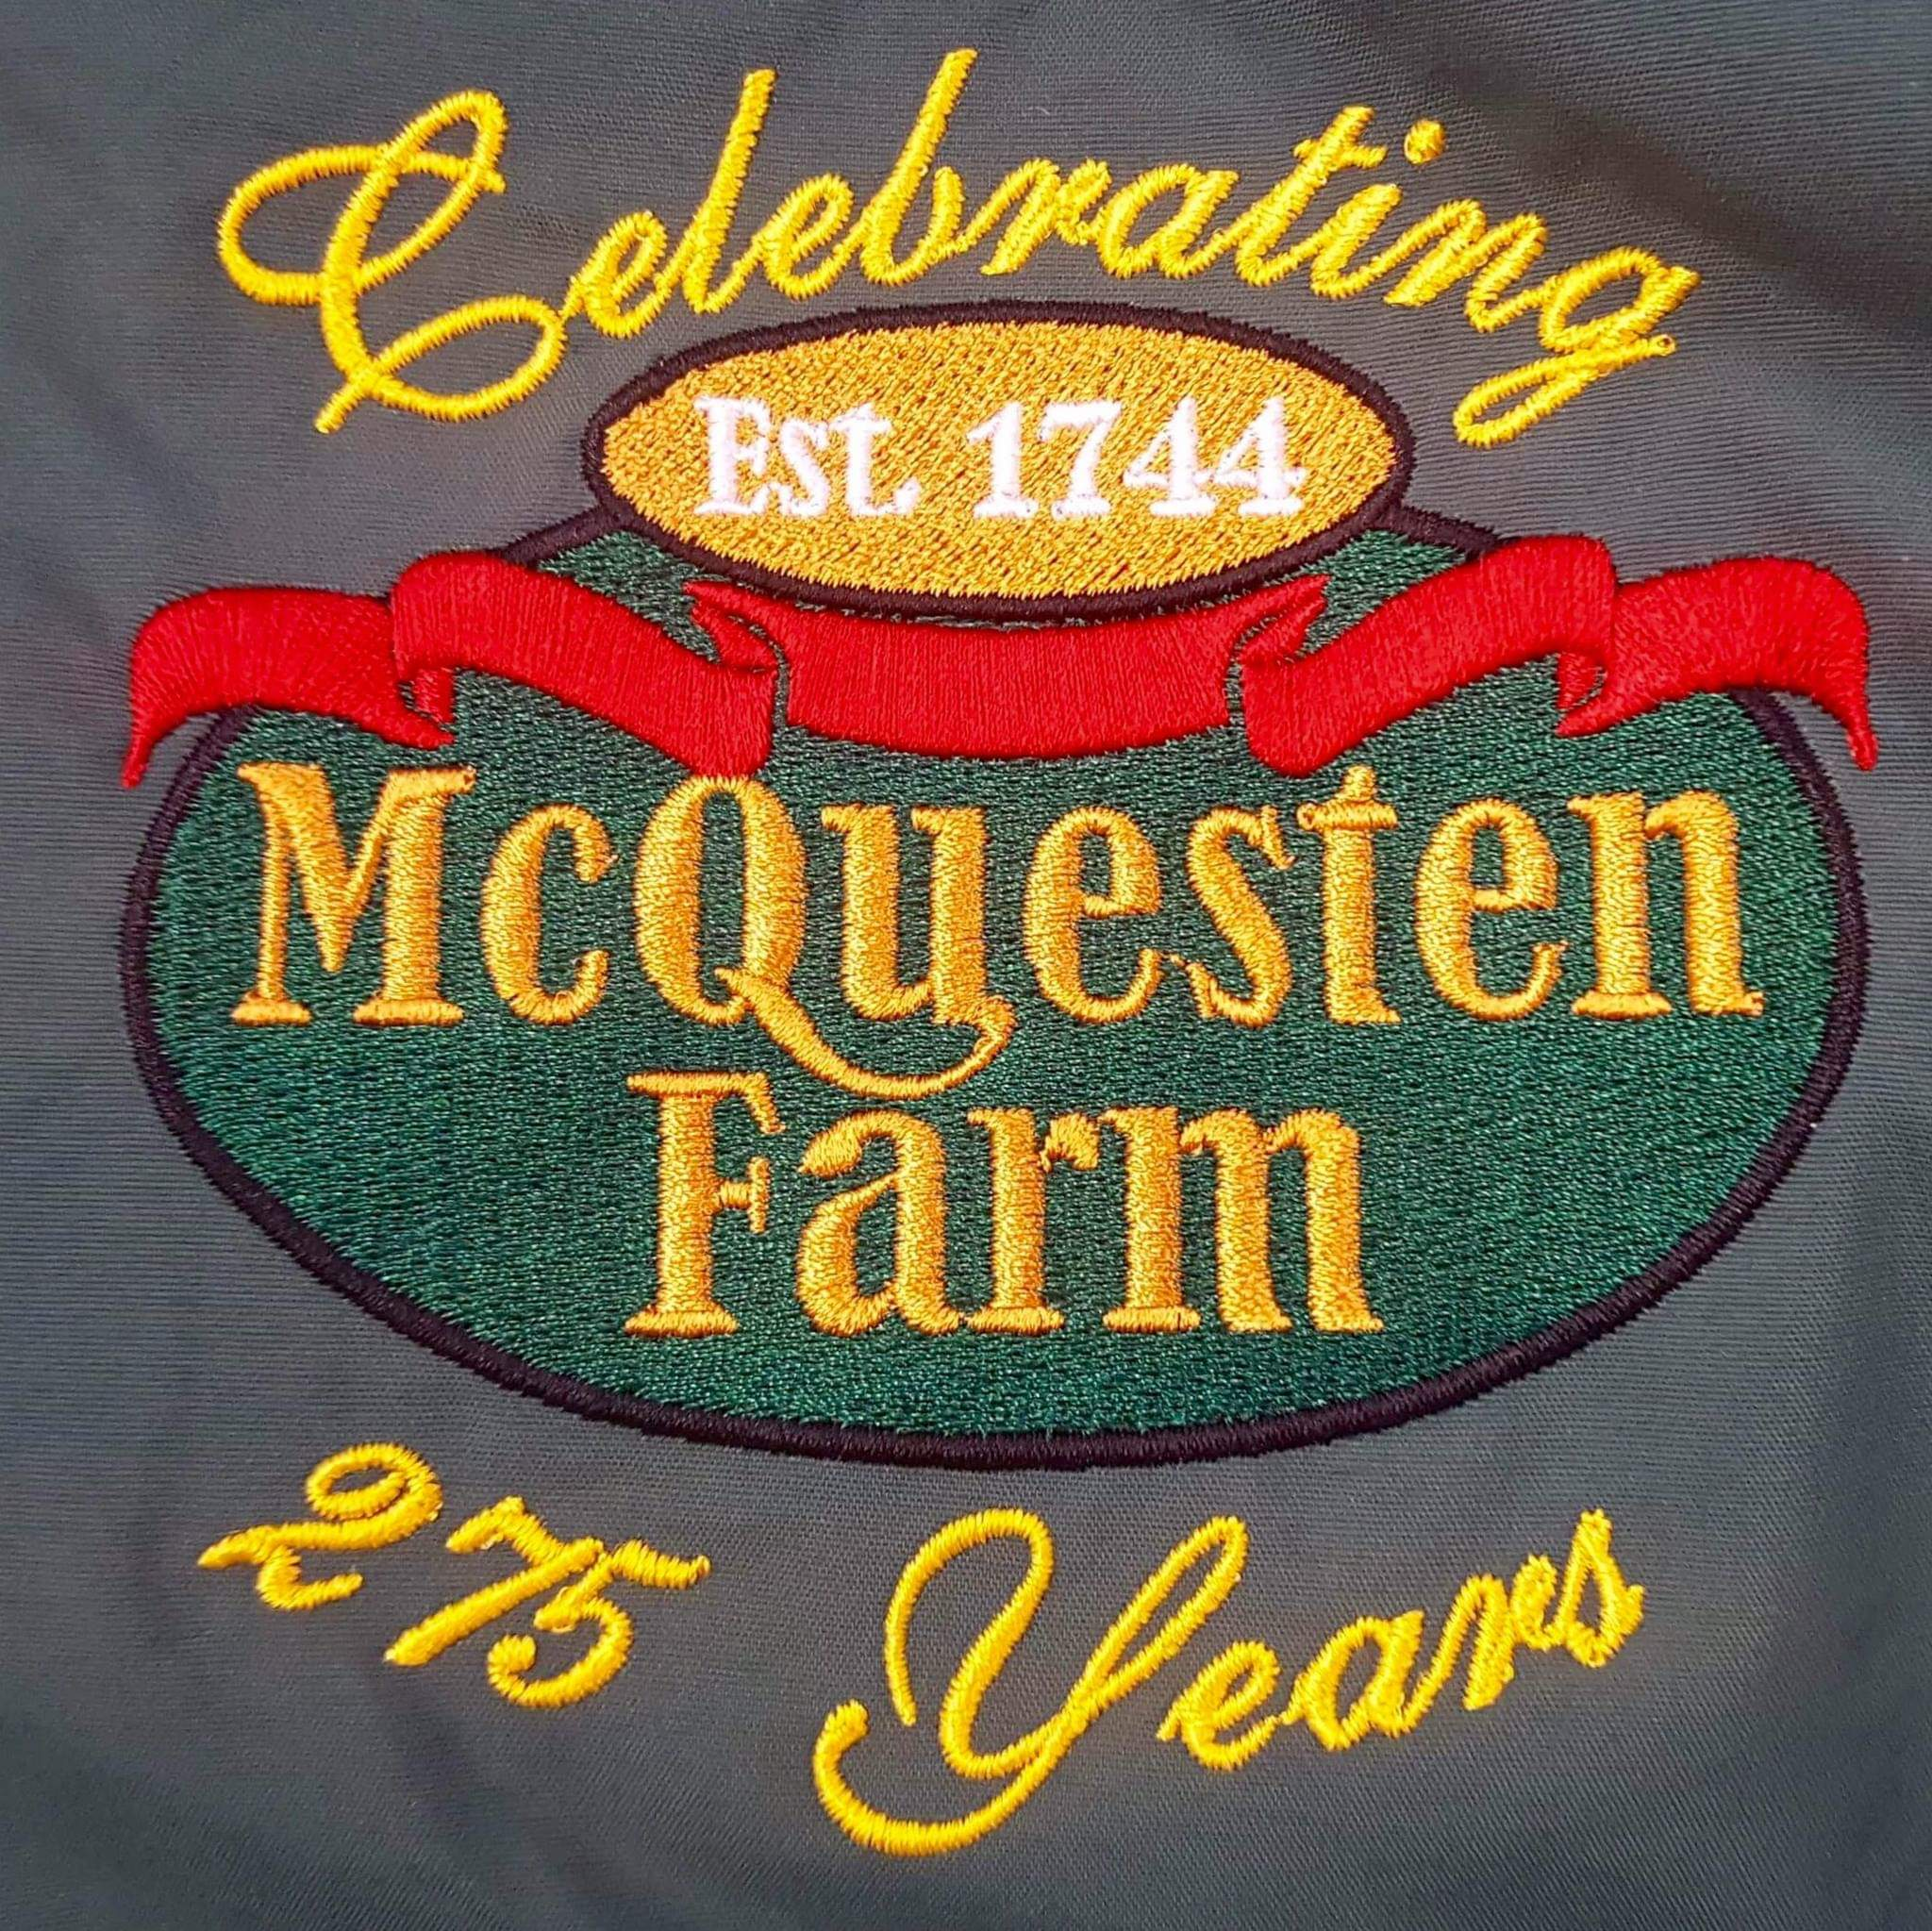 McQuesten Farm